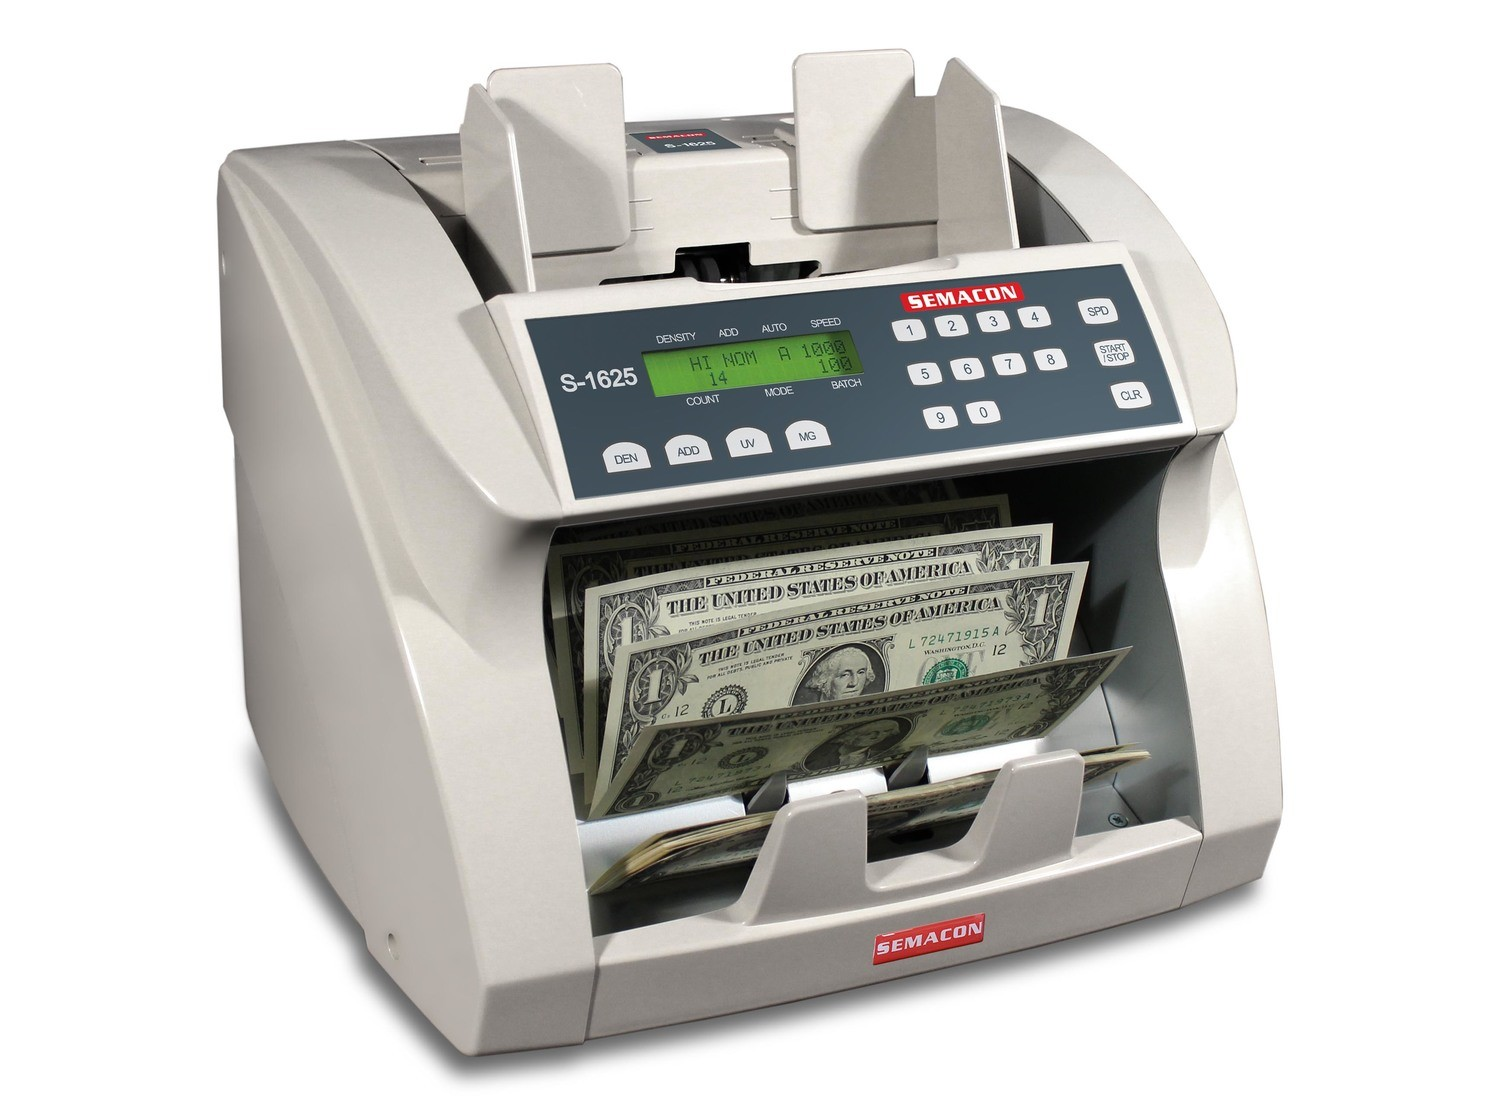 Semacon S-1600V, S-1615V, S-1625V Currency Counter